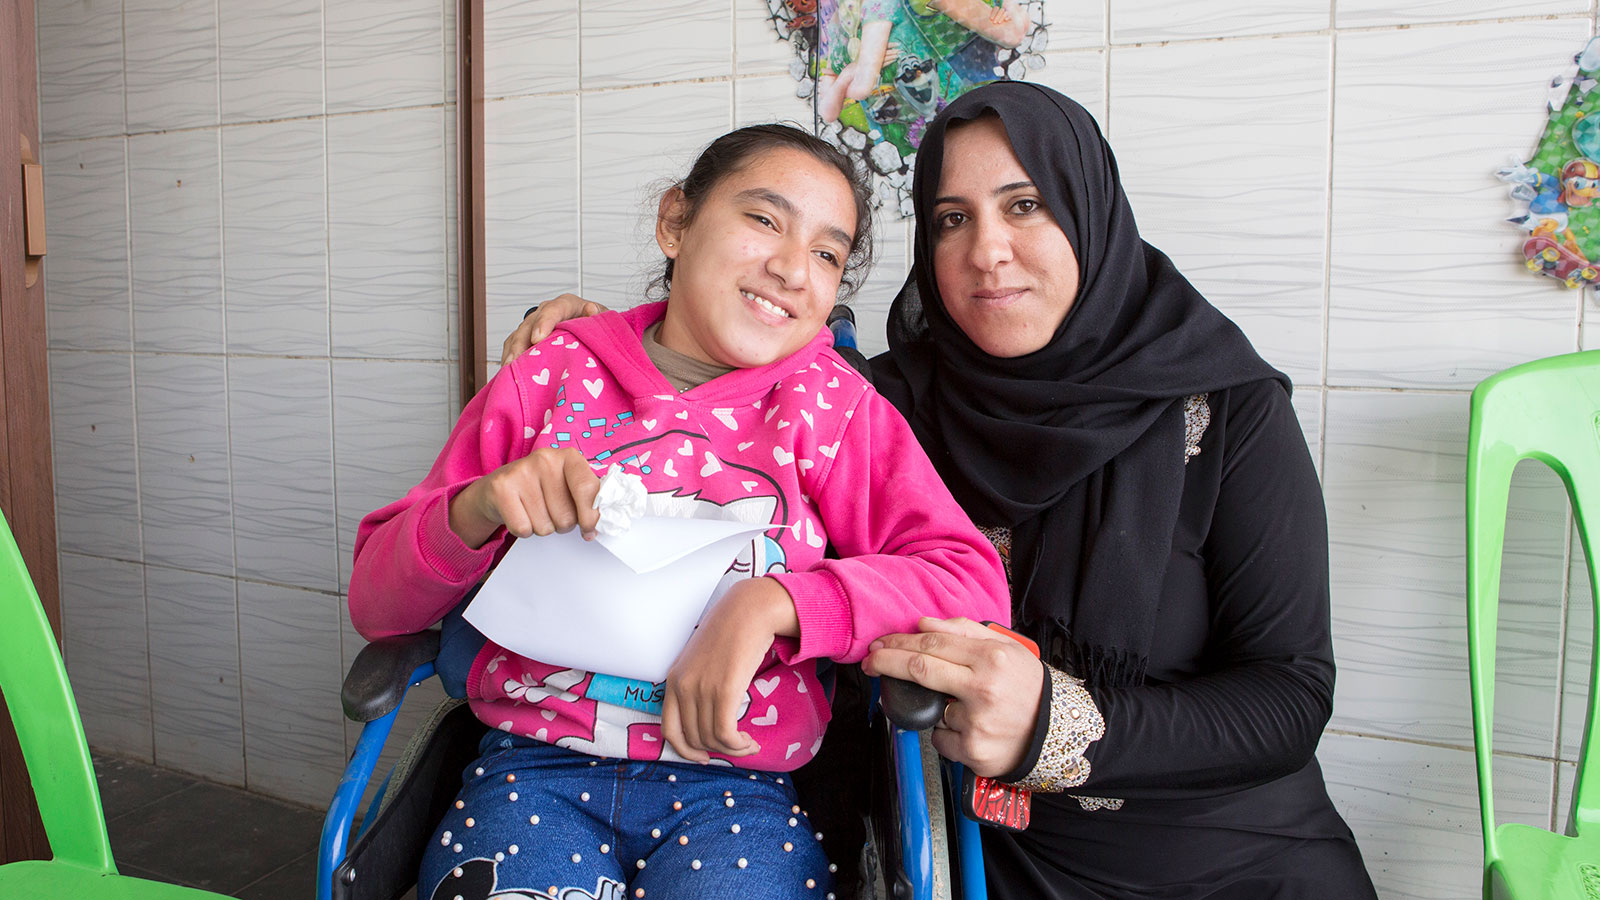 Lebanon | Providing care to the most vulnerable